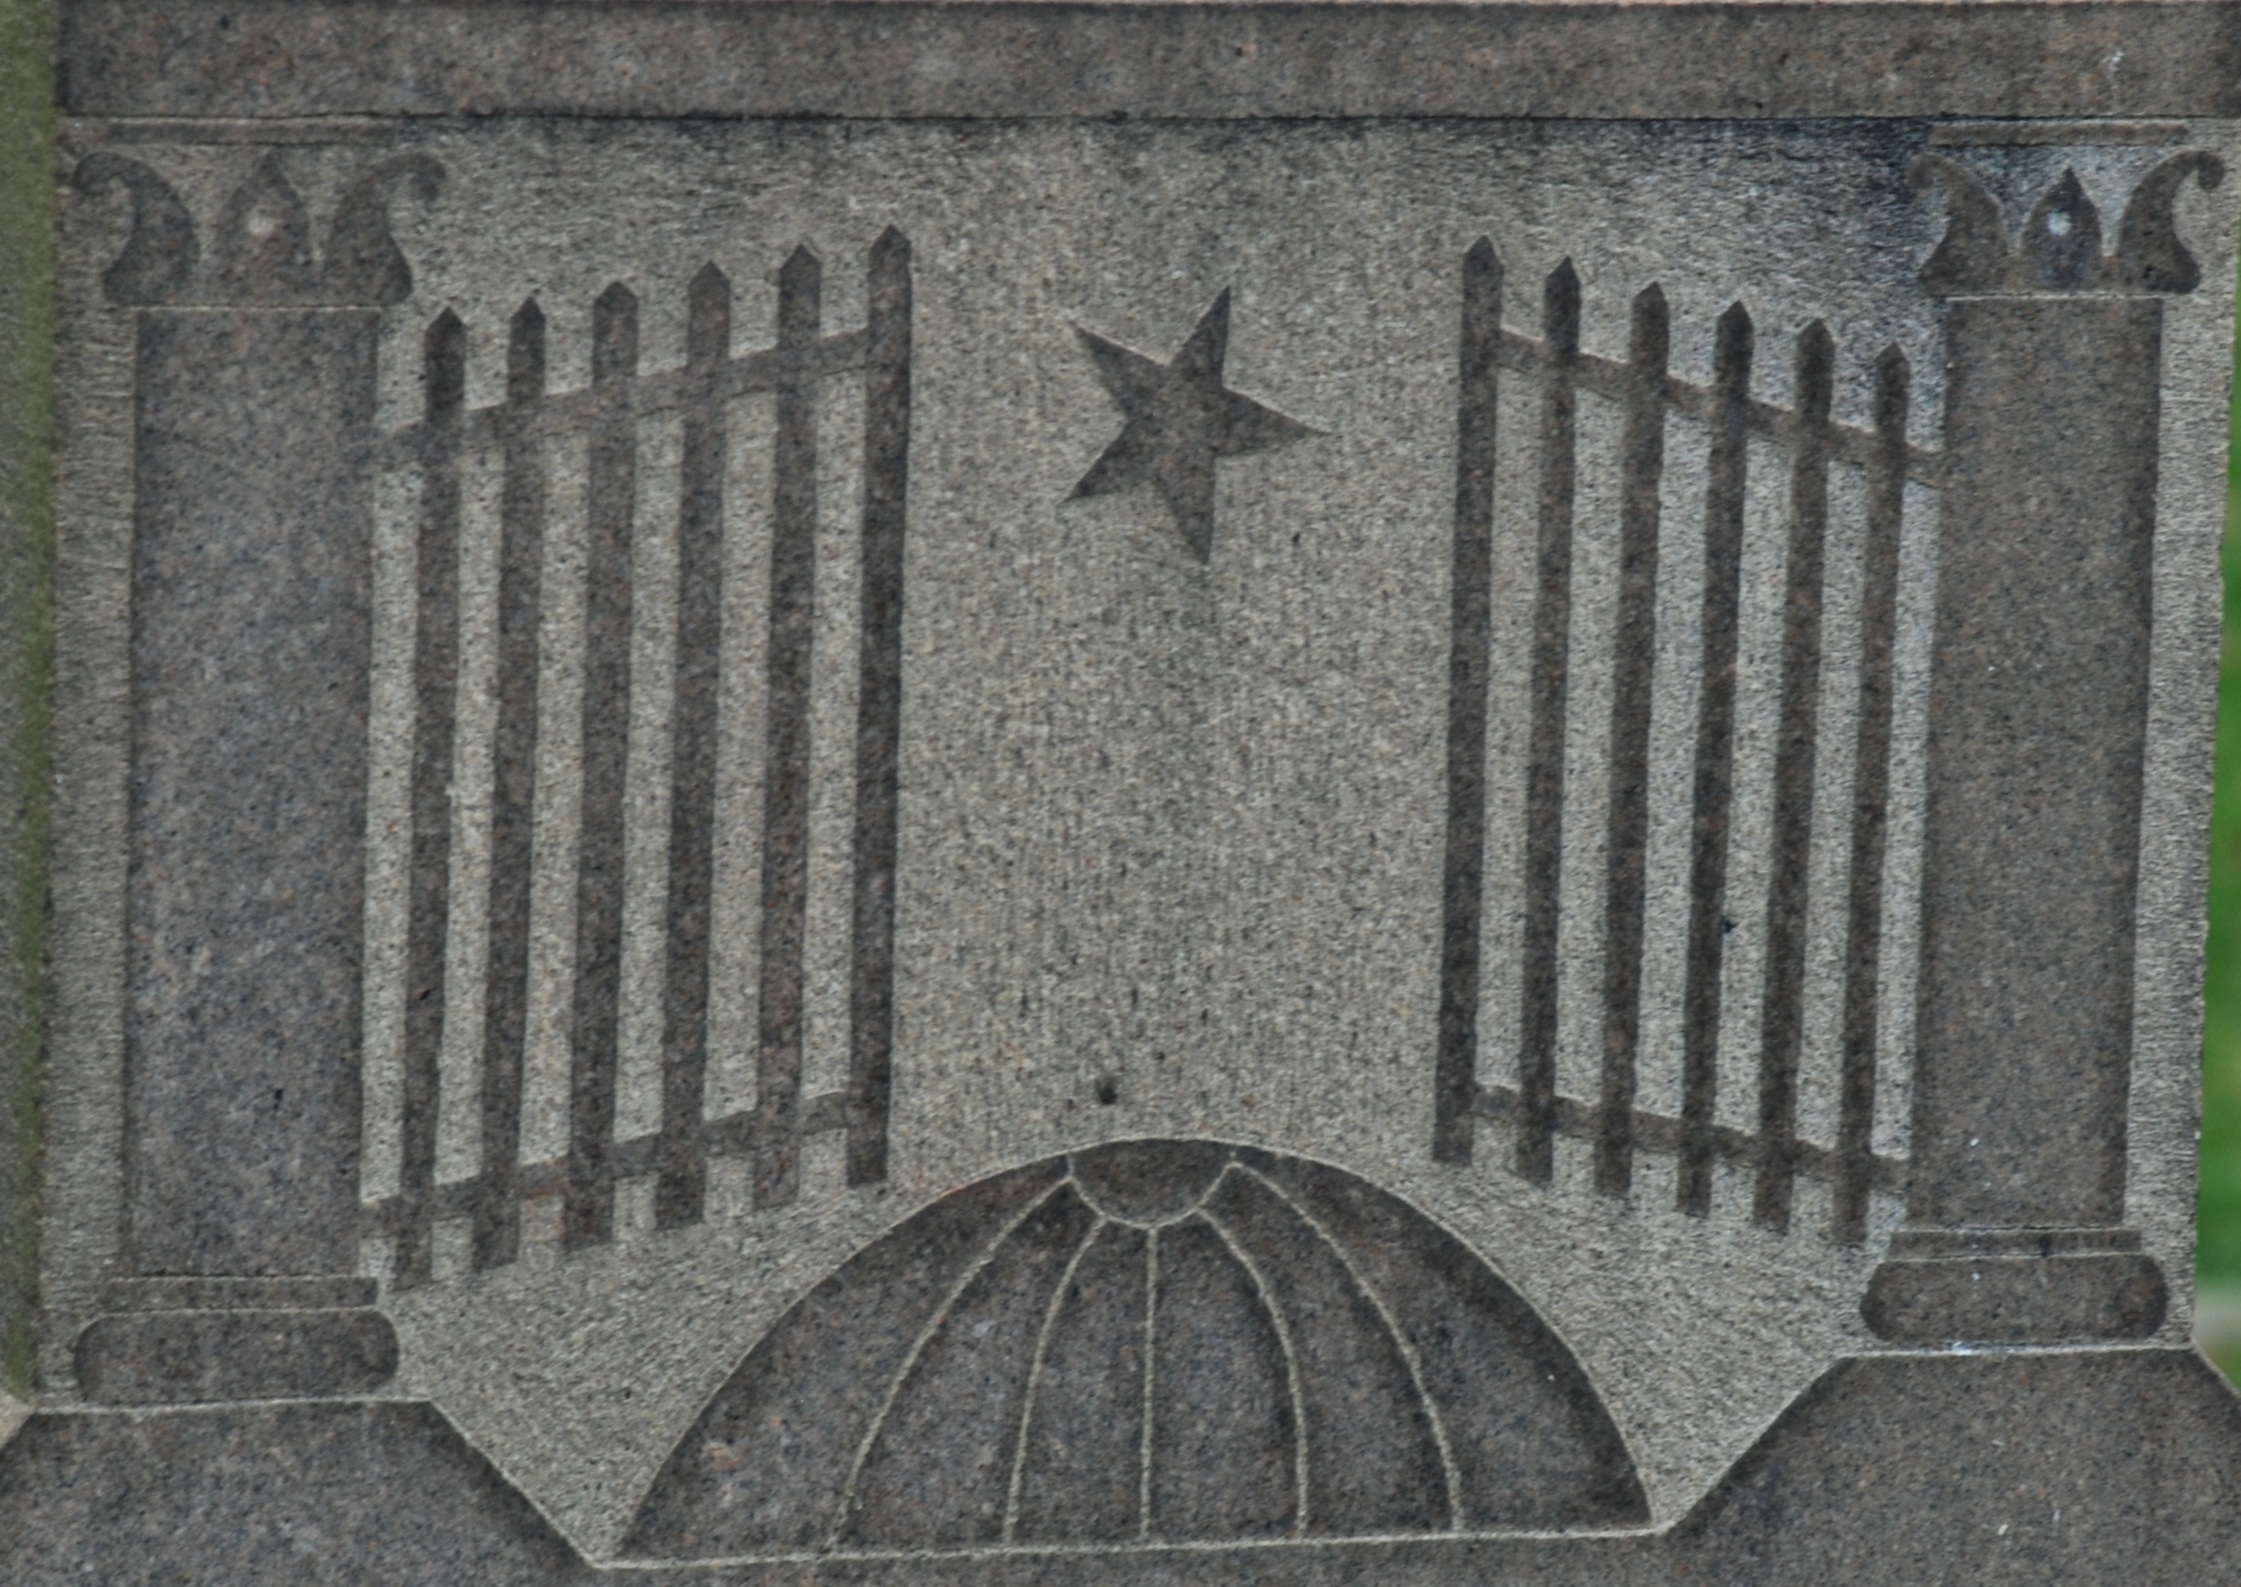 Granite carving of the gates of heaven opening to reveal a star, with earth below.